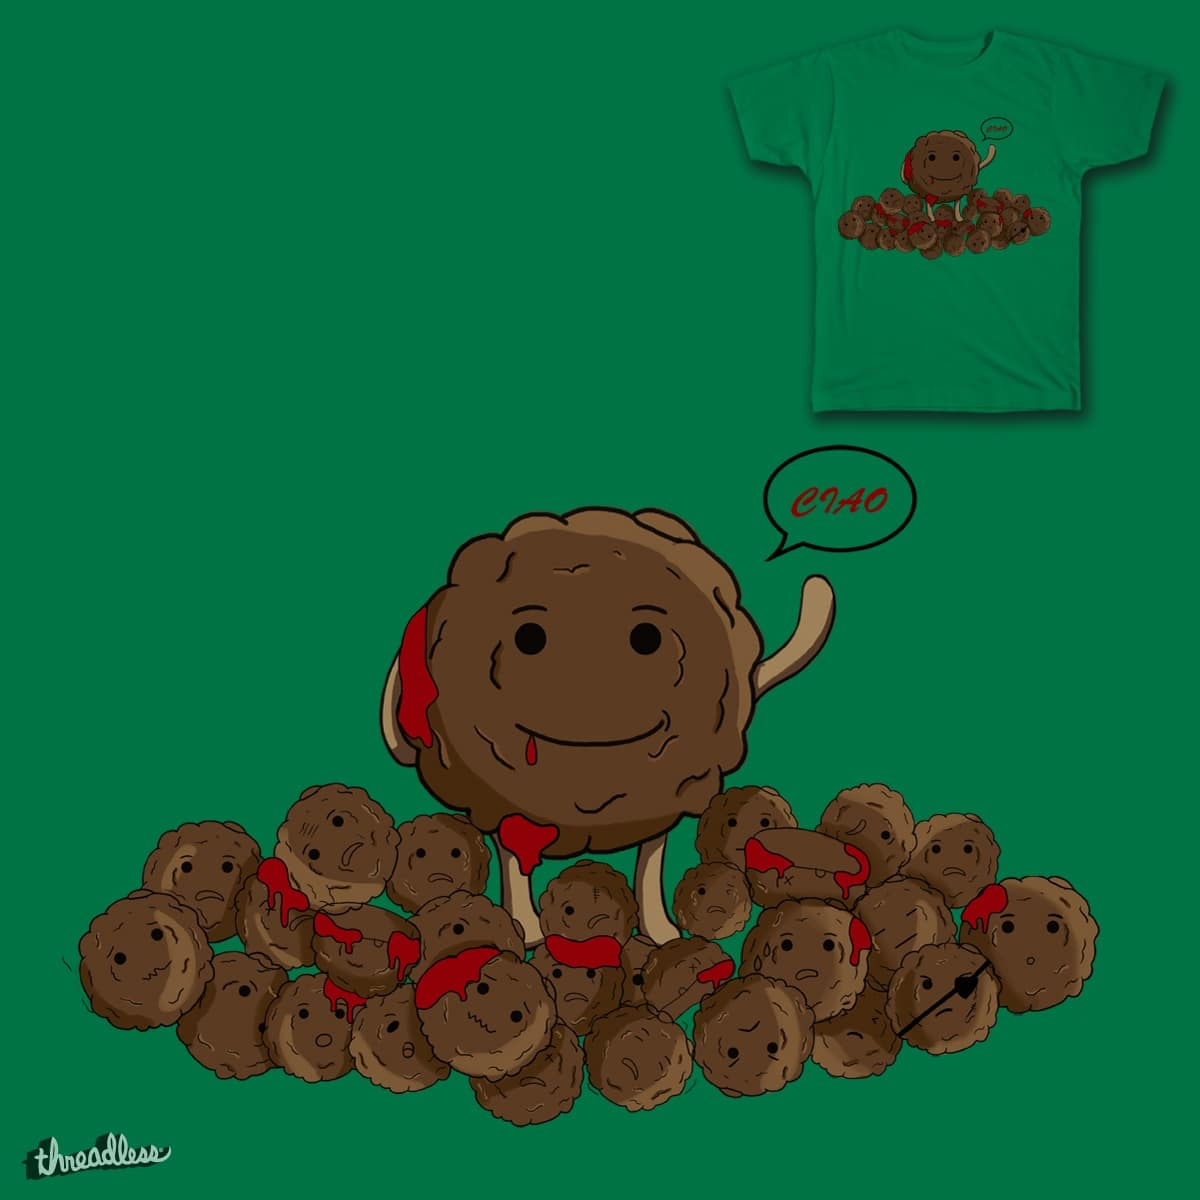 MeatBall  by Gxian on Threadless